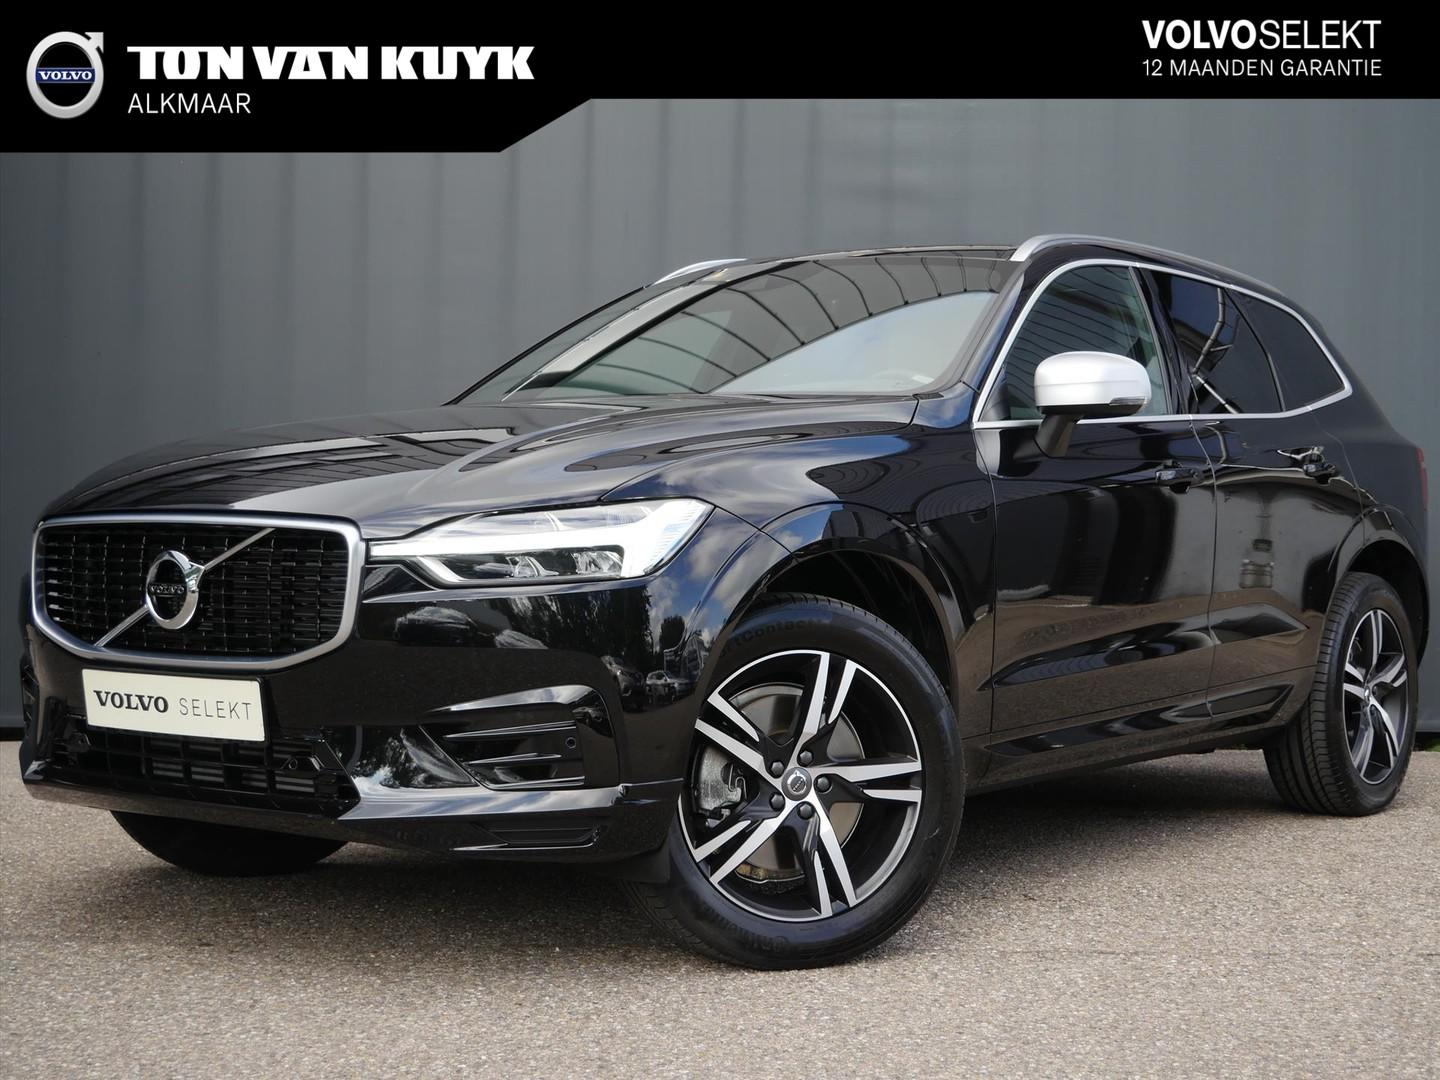 Volvo Xc60 T4 geartronic r-design / panorama dak / park assist line